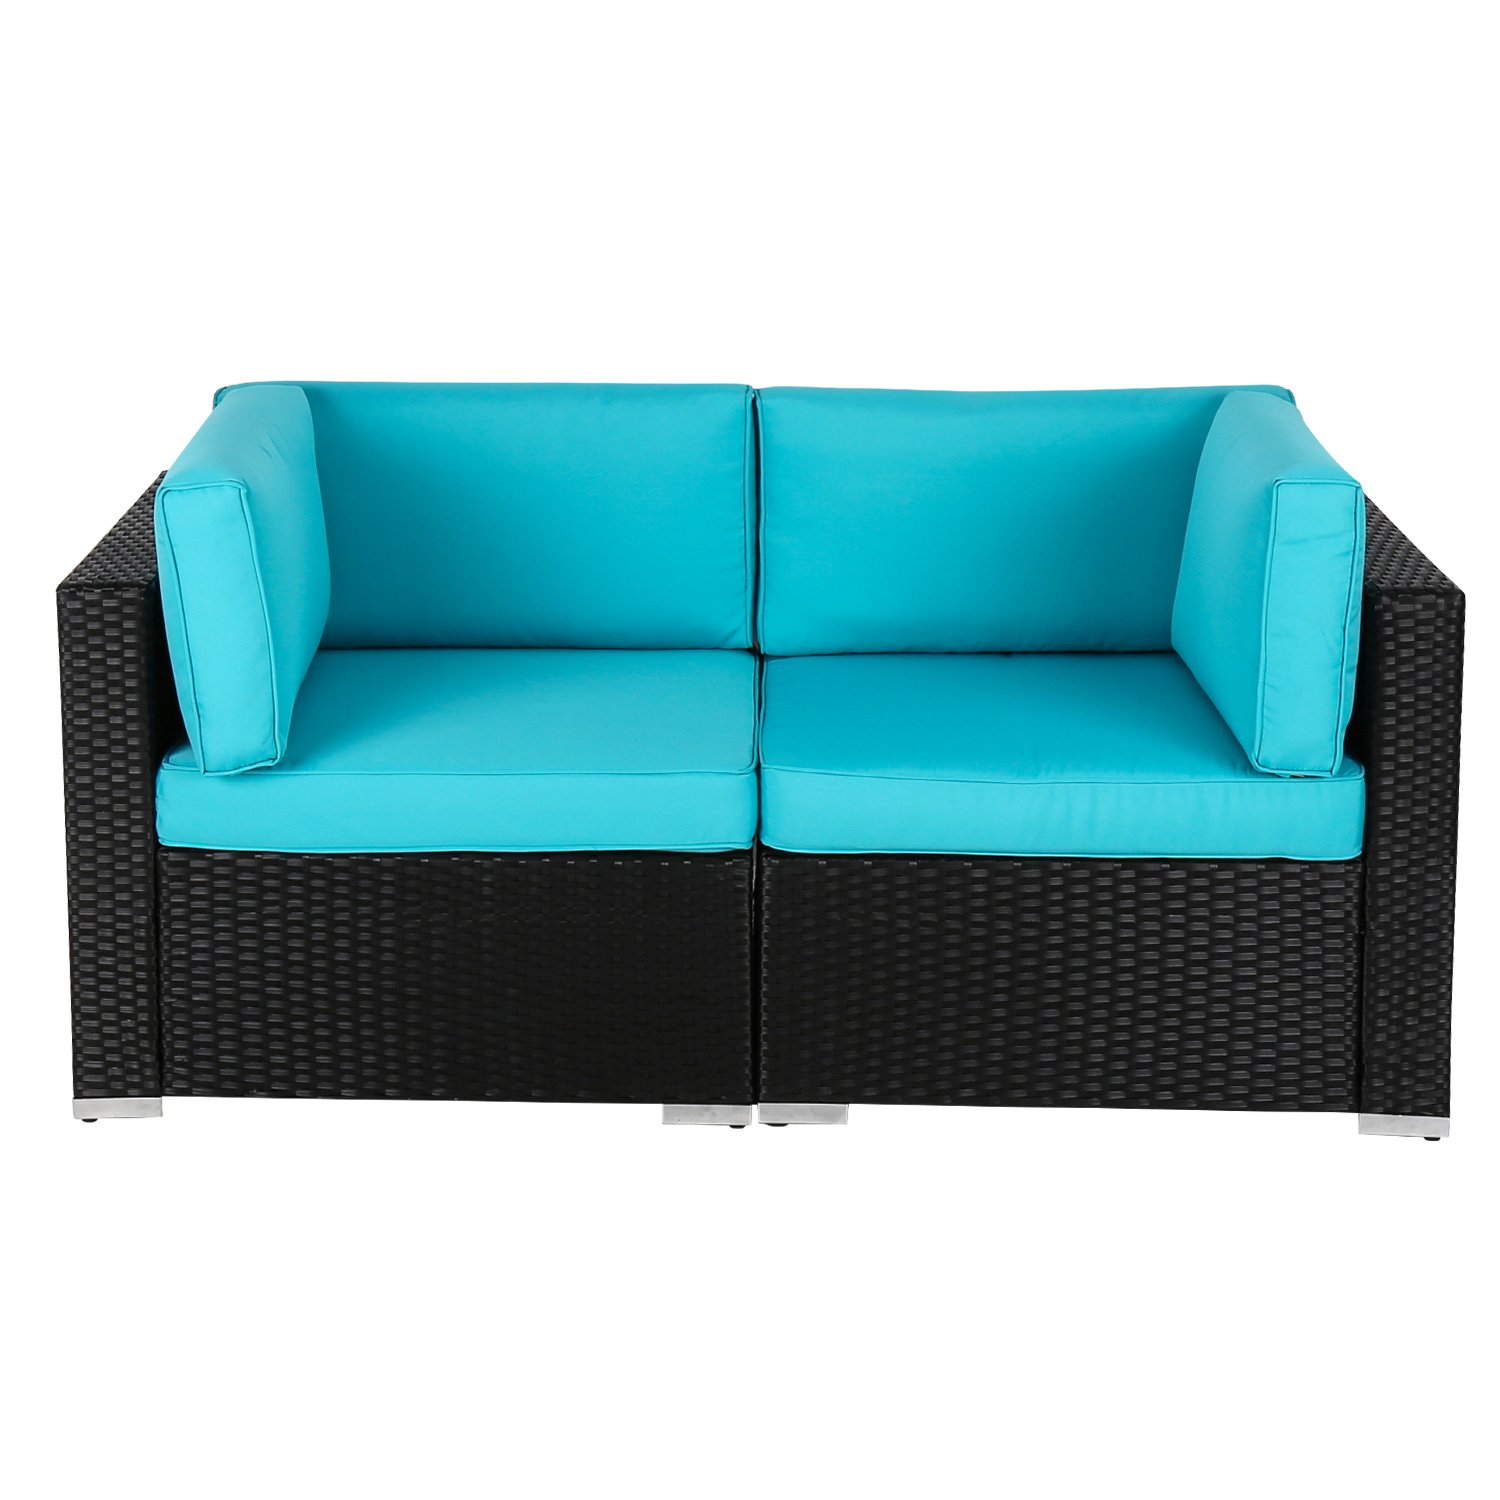 Kinbor Outdoor Garden Wicker Loveseat Sofa (2-Piece Set) PE Rattan Sofa Sectional Furniture Set with Washable Cushions, Blue